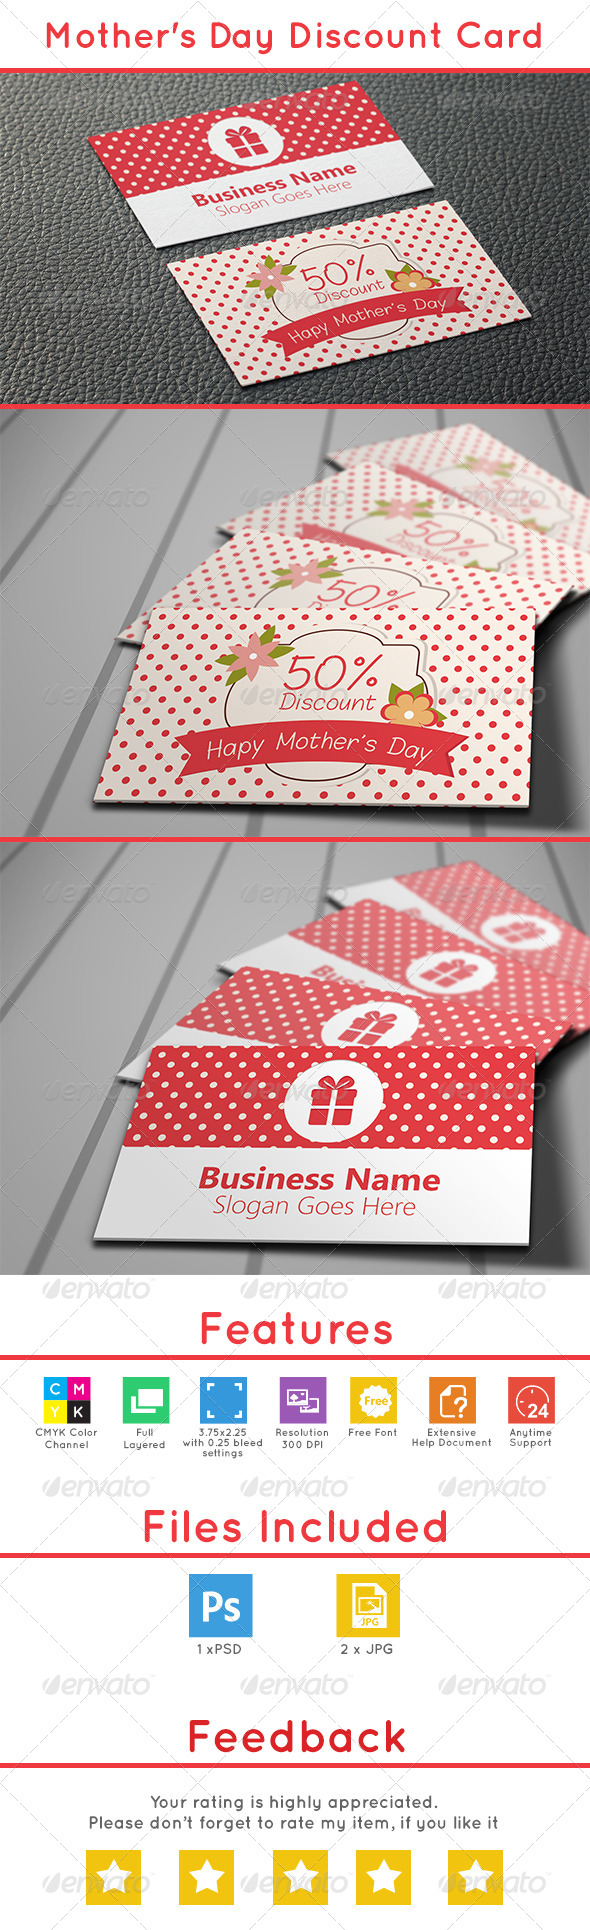 Discount Card Graphics, Designs & Templates from GraphicRiver